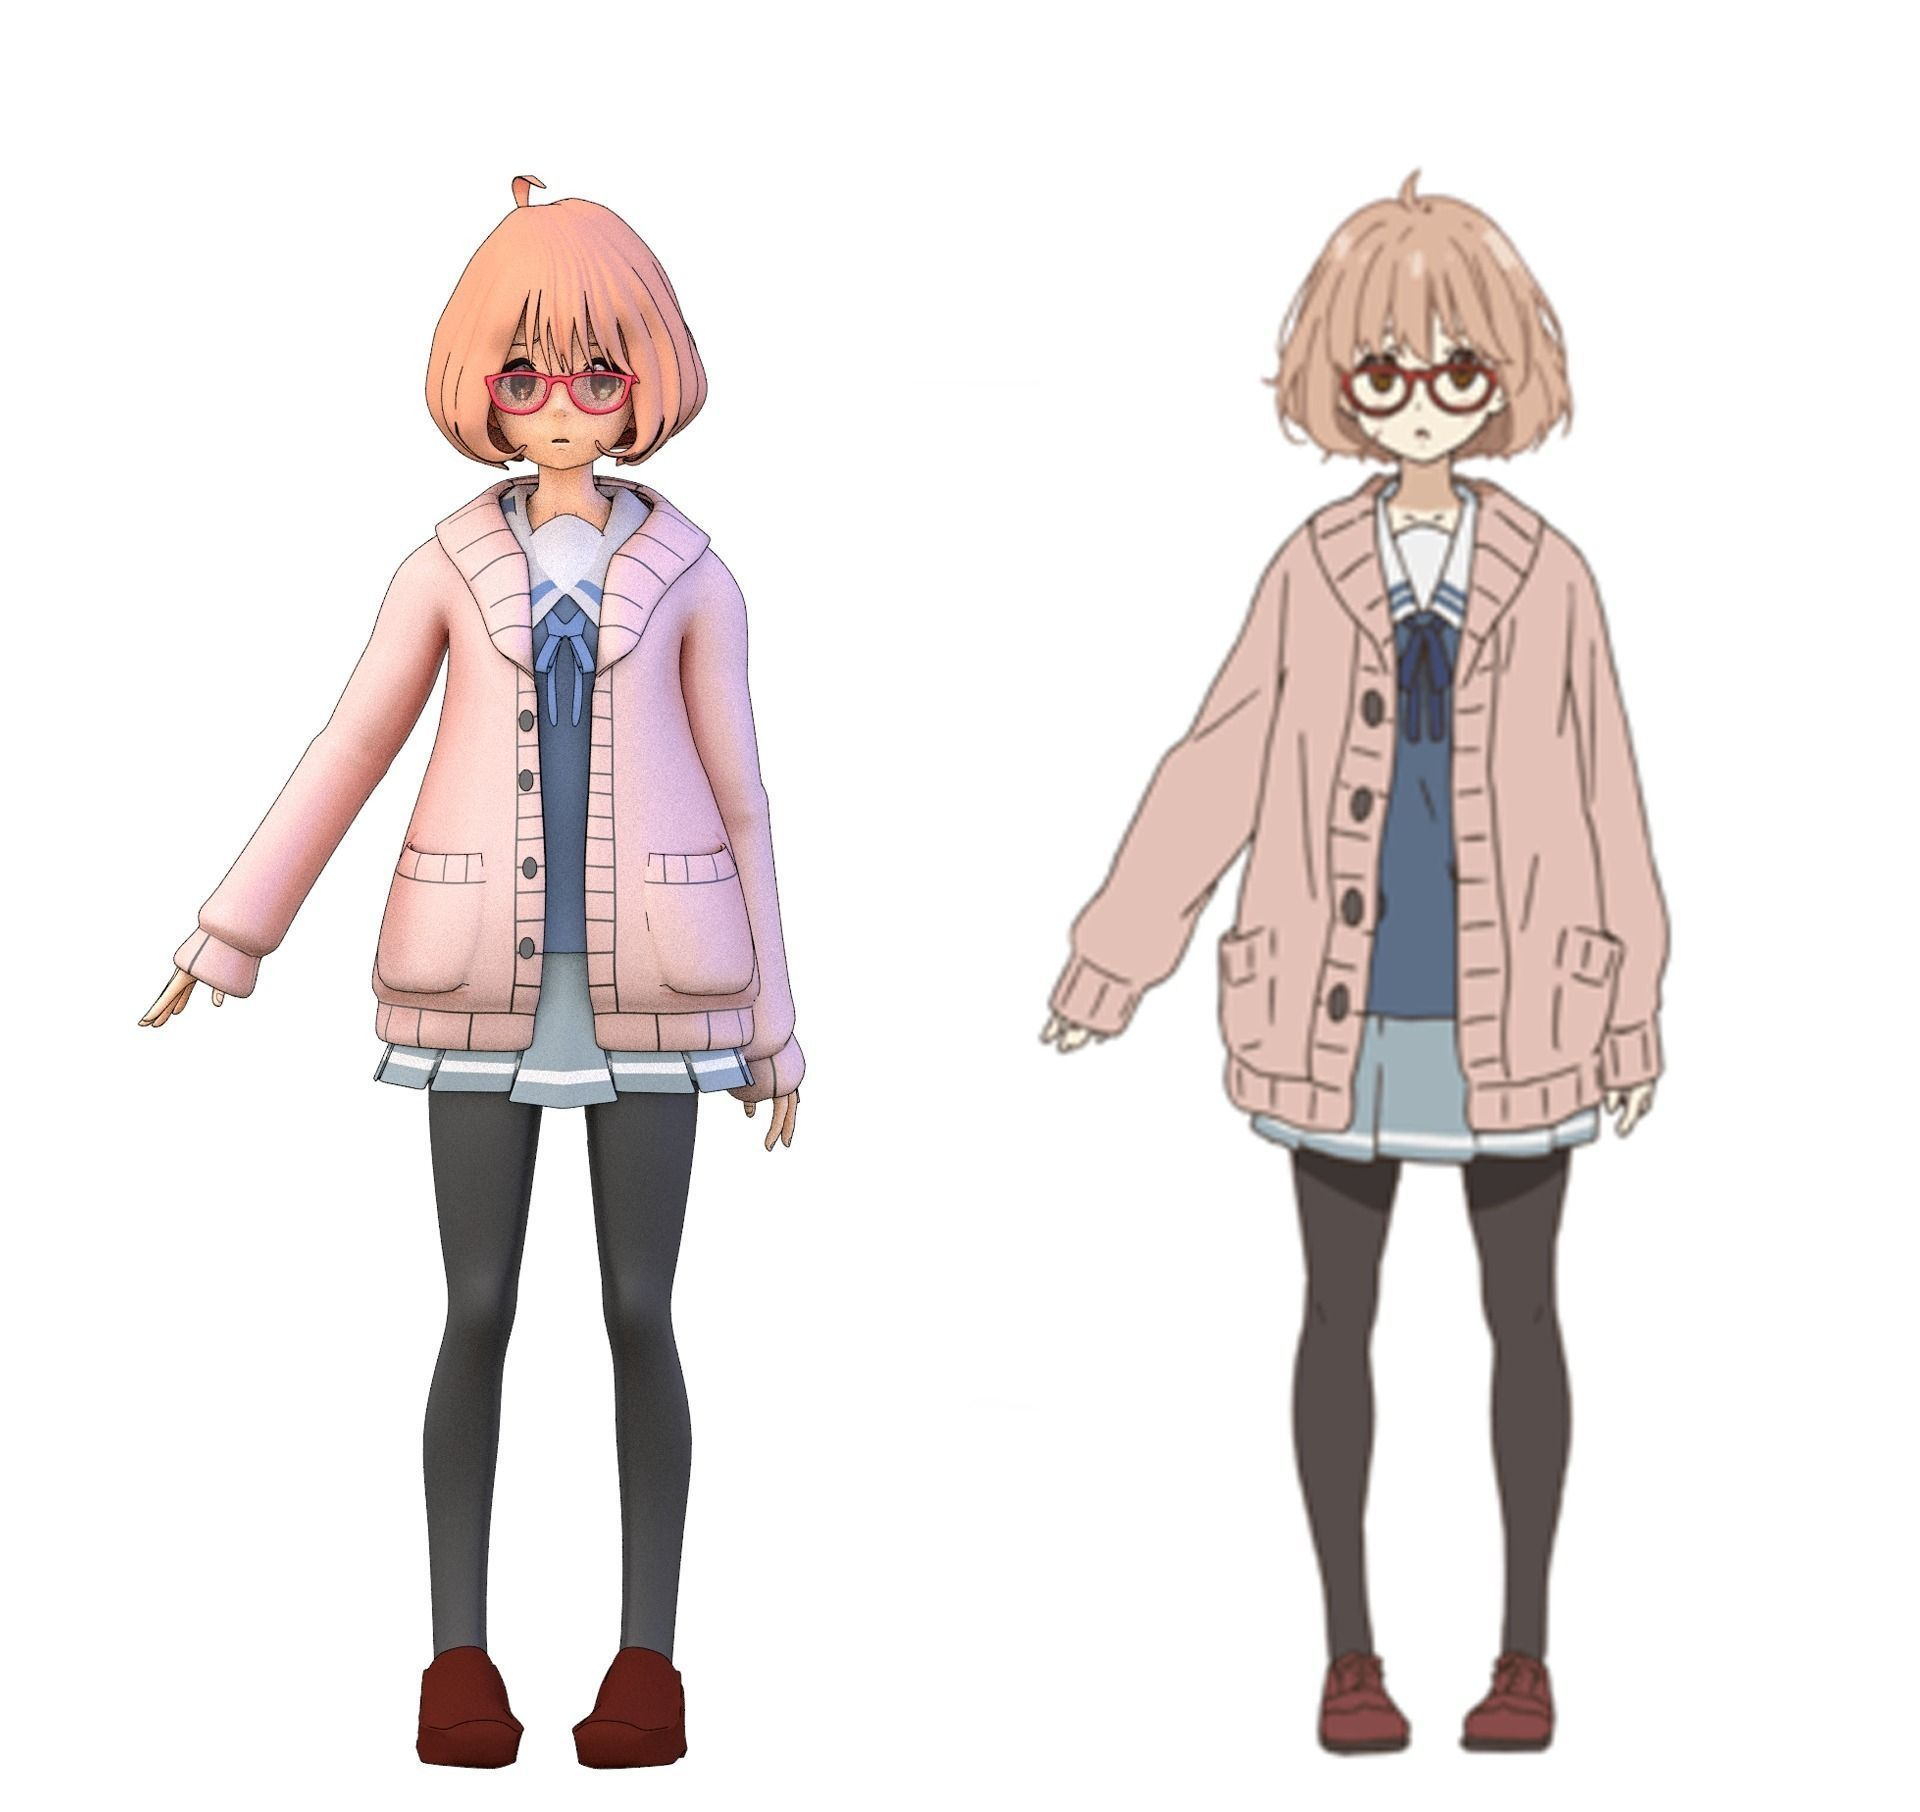 2d Modeling Online Mirai From Kyoukai No Kanata Free 3d Model Rigged Blend